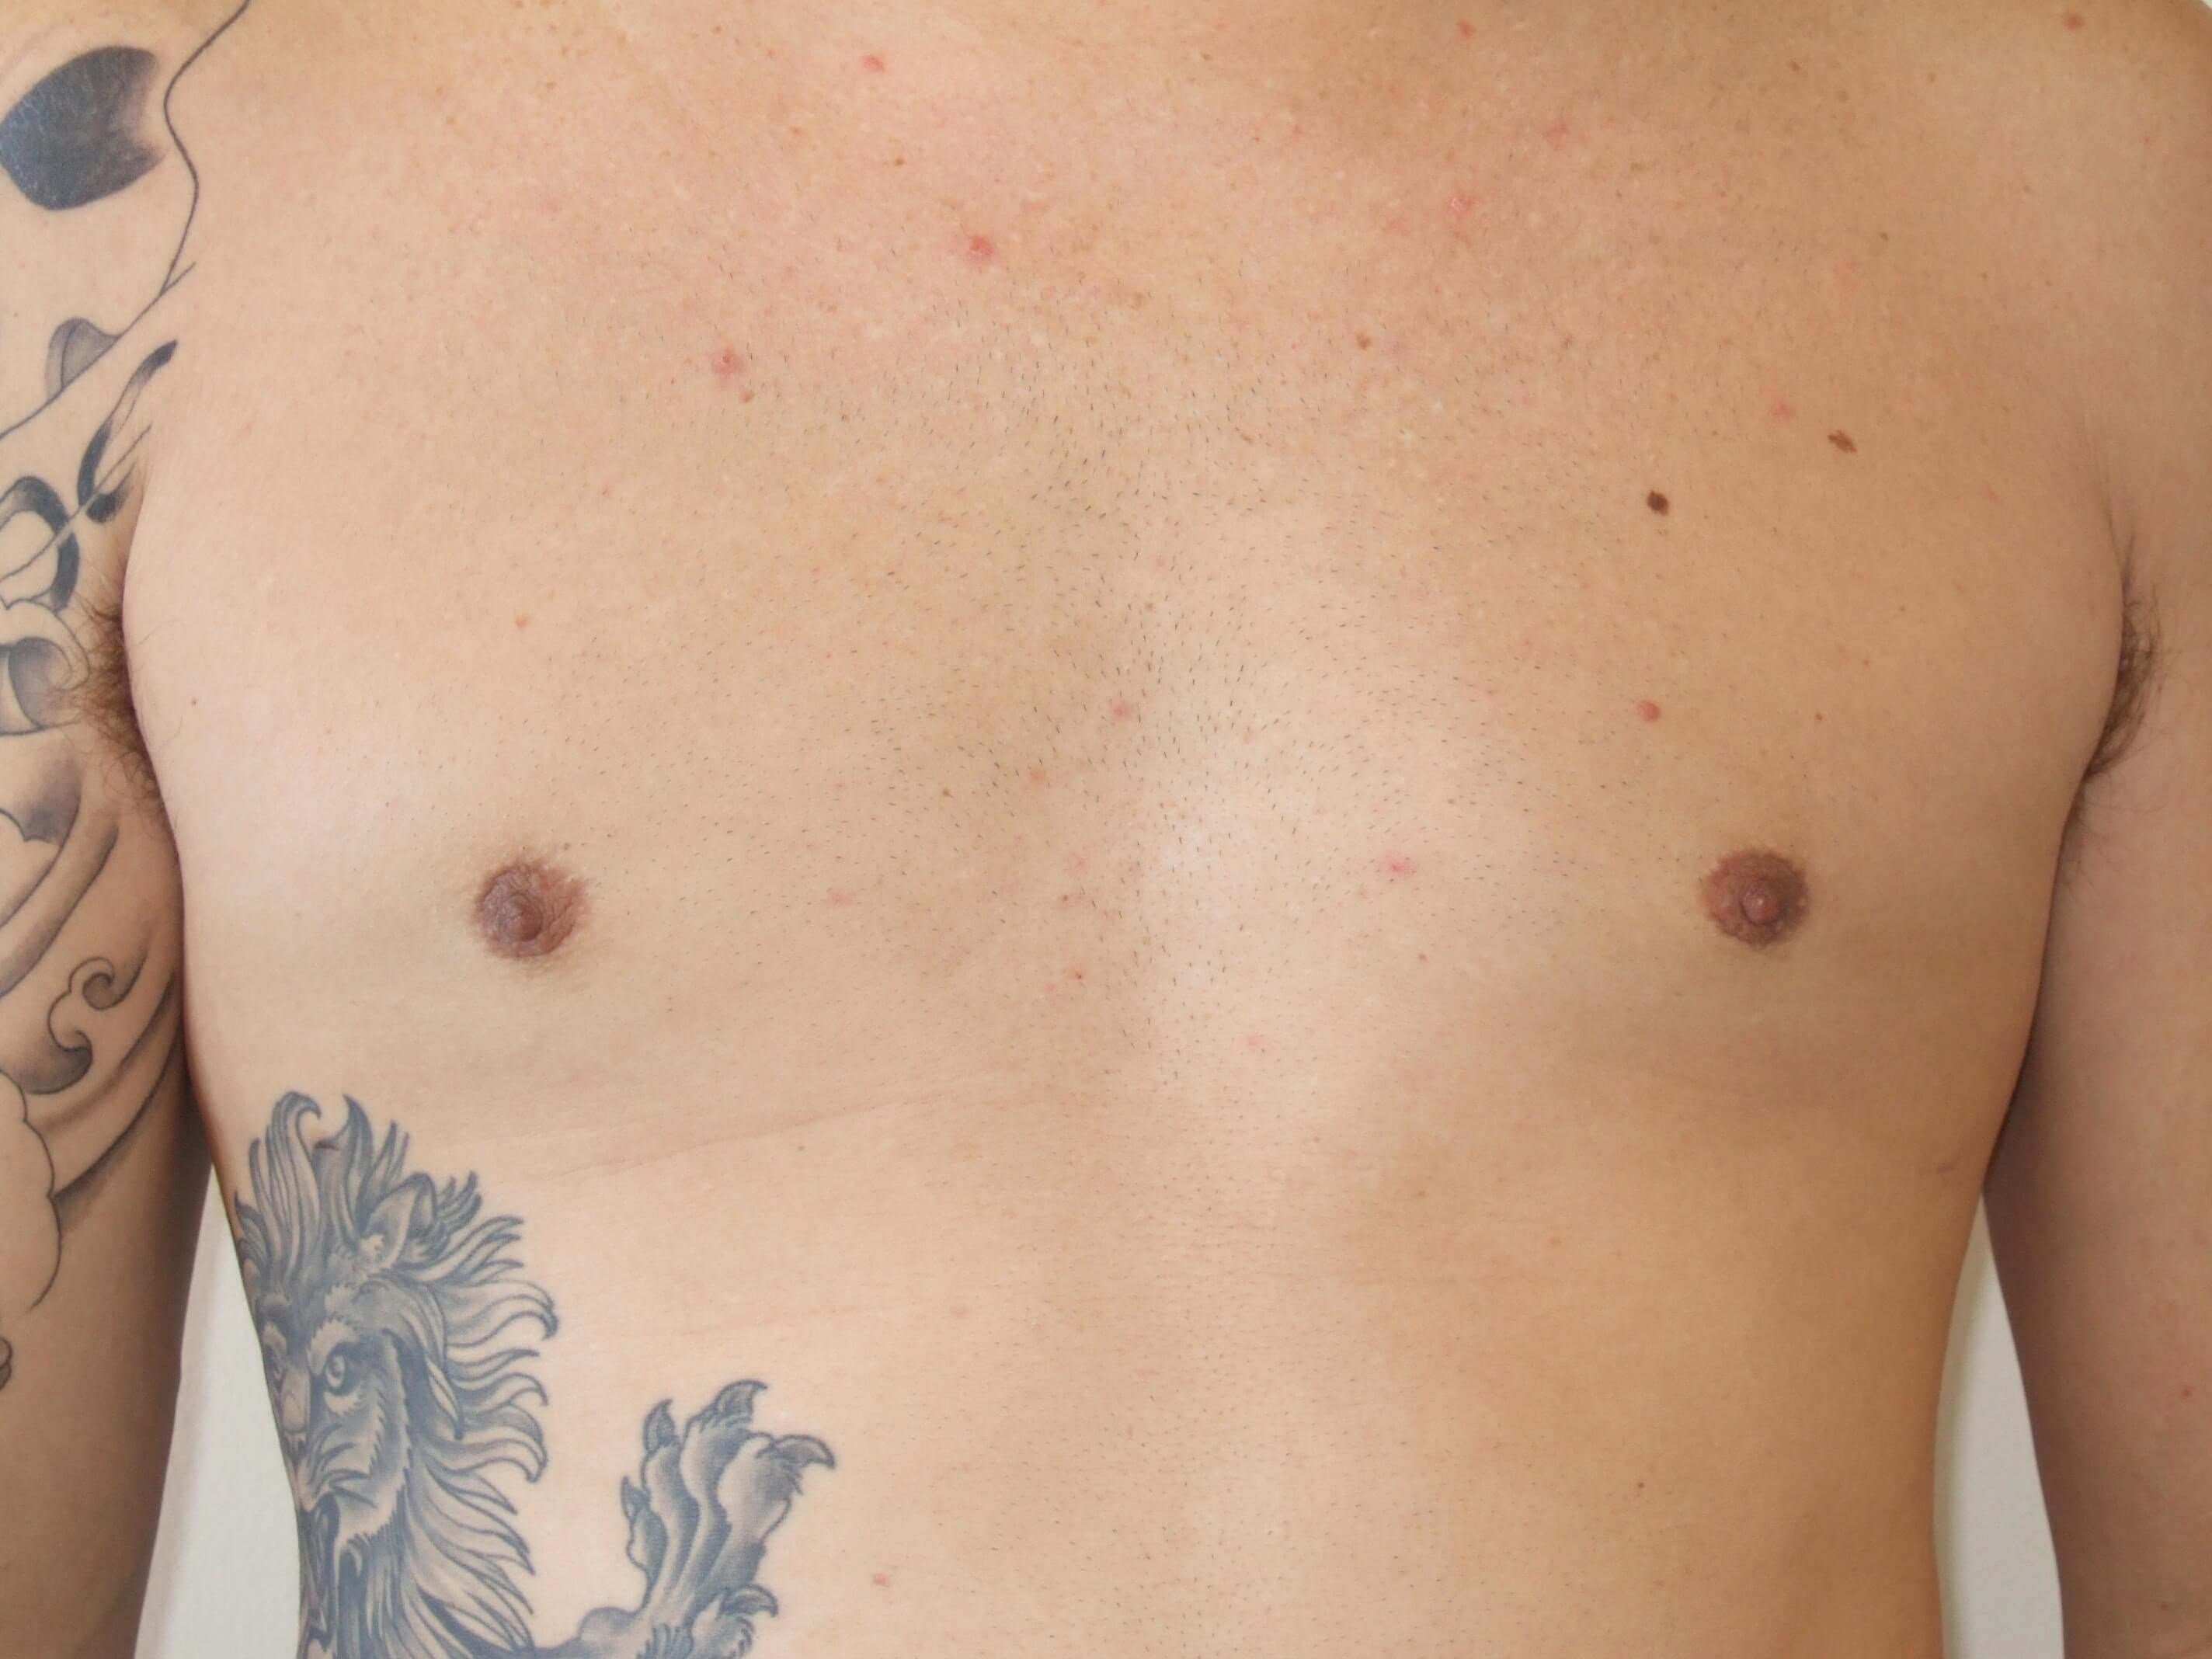 Gynecomastia: Front View After Gynecomastia Surgery